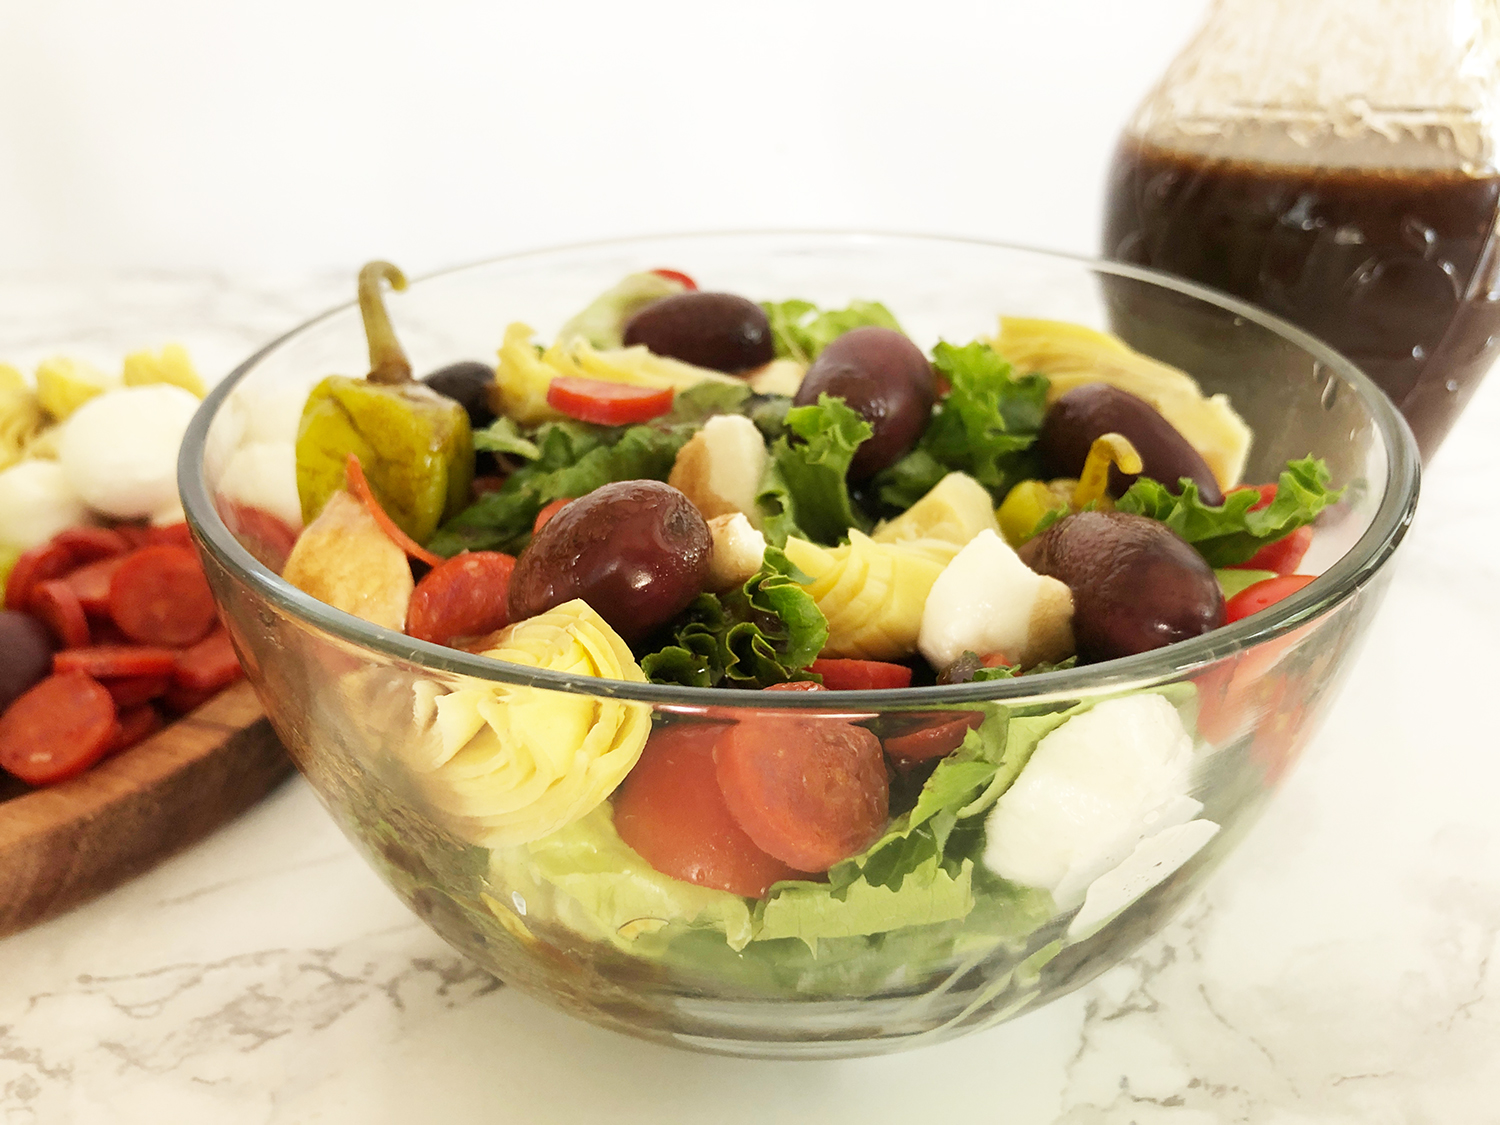 Antipasto Salad with Balsamic Vinaigrette